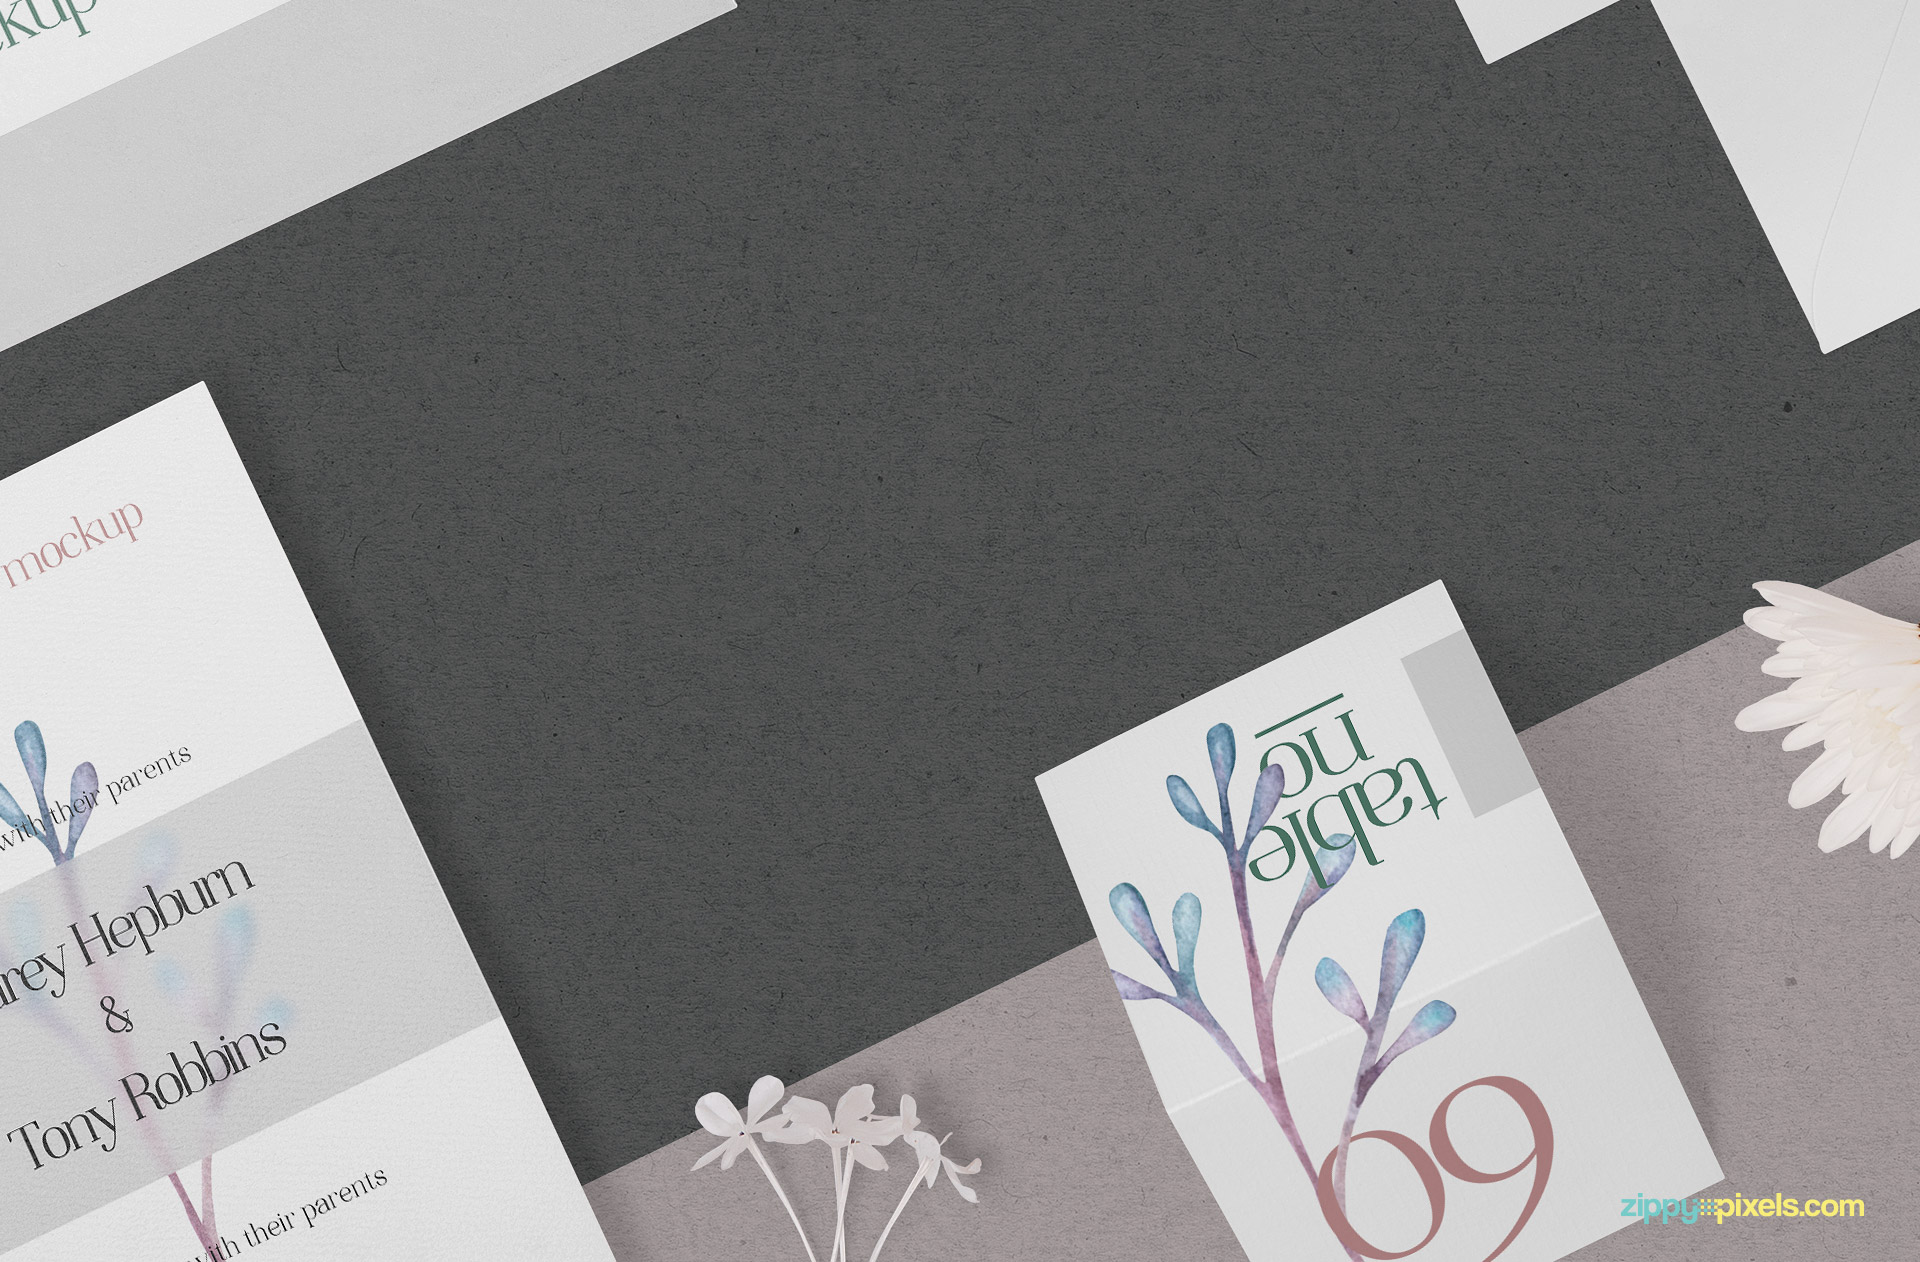 Edit the background of the wedding stationery mockup.